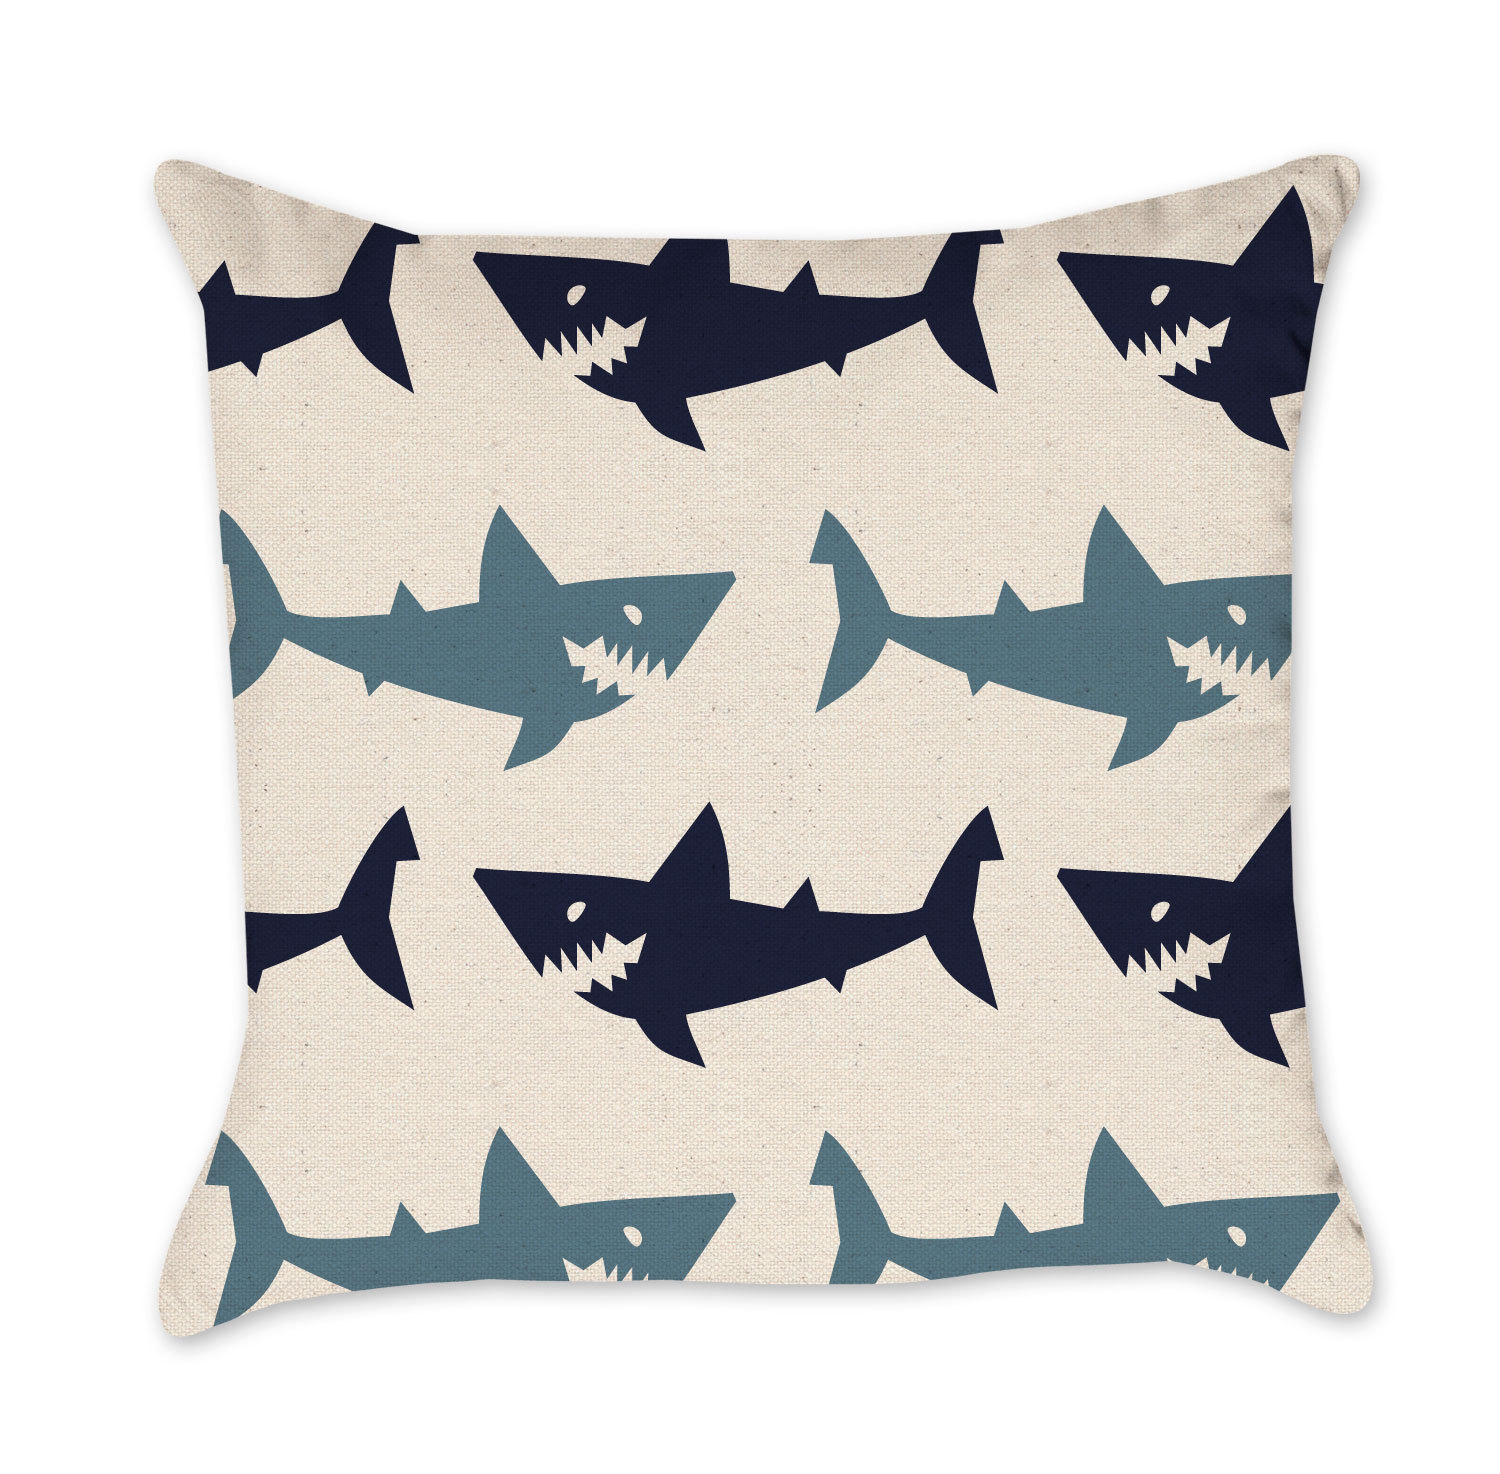 Shark Pillow That Eats You shark pillow